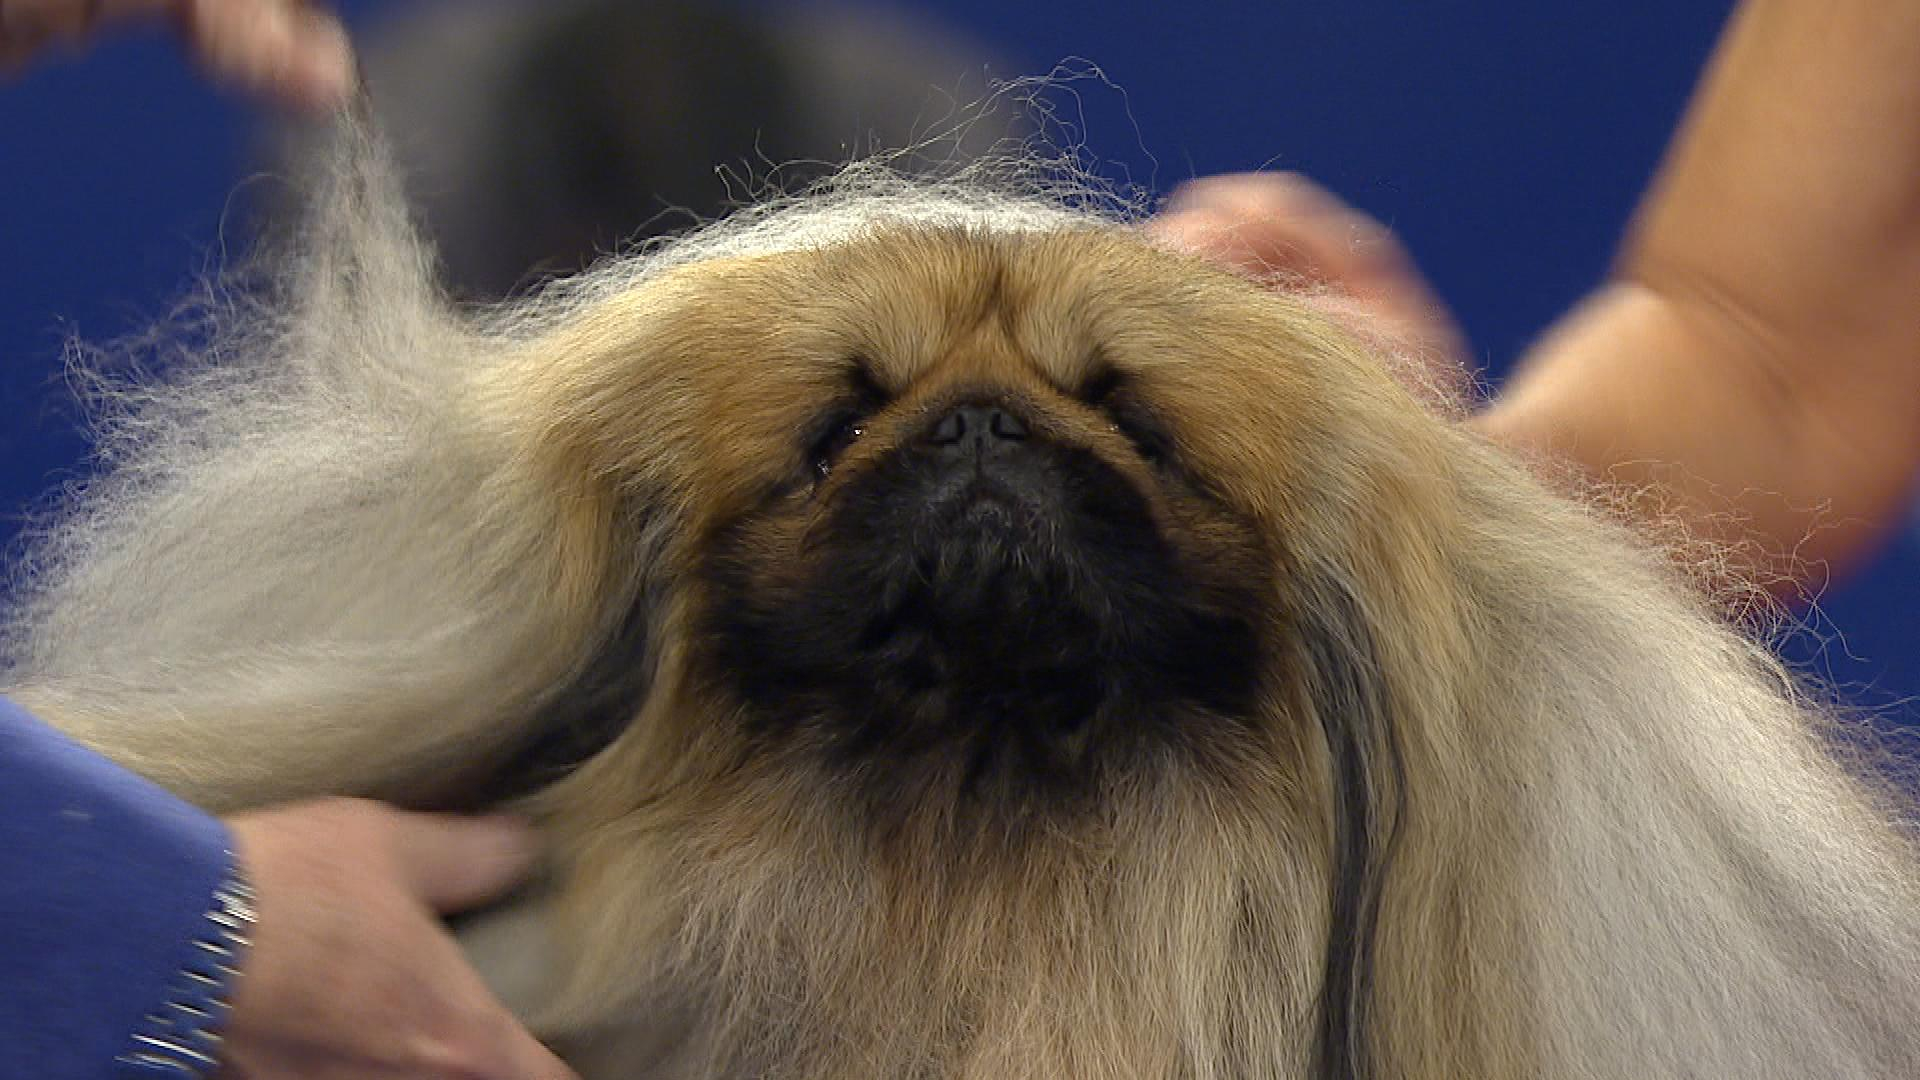 Discussion on this topic: Pekingese Wins Best in Show at the , pekingese-wins-best-in-show-at-the/